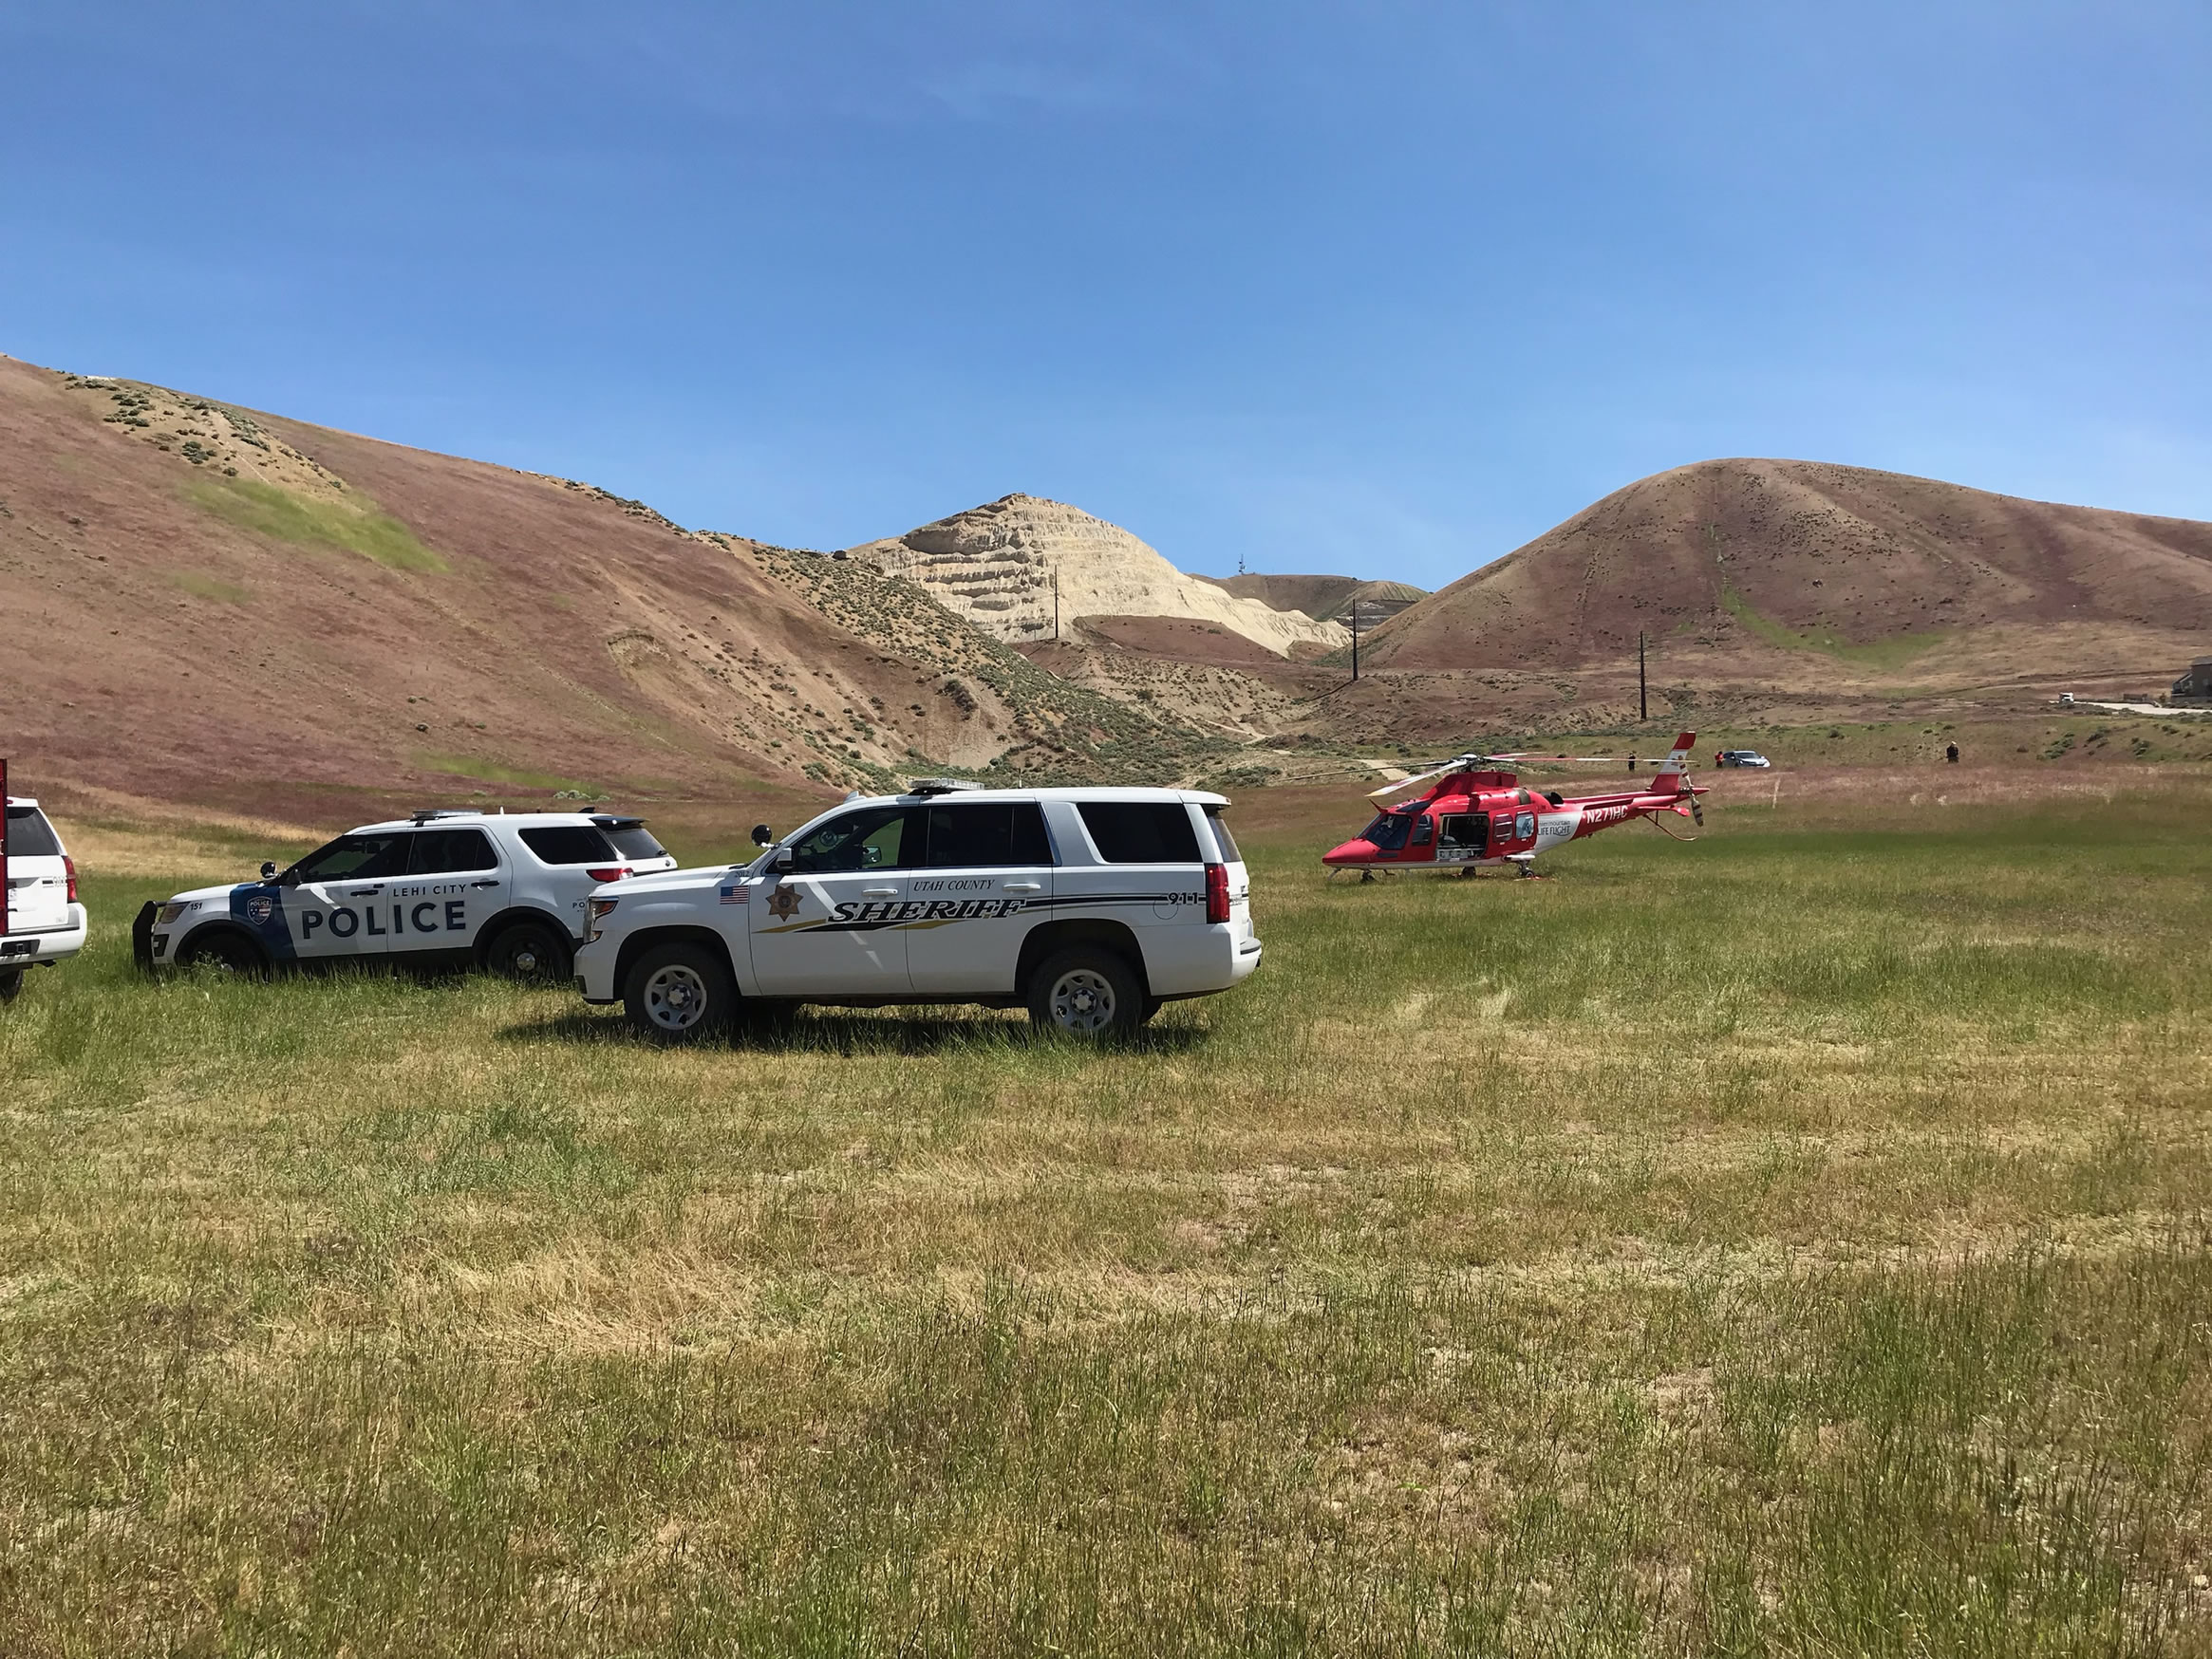 Utah County Sheriff's Office - Media